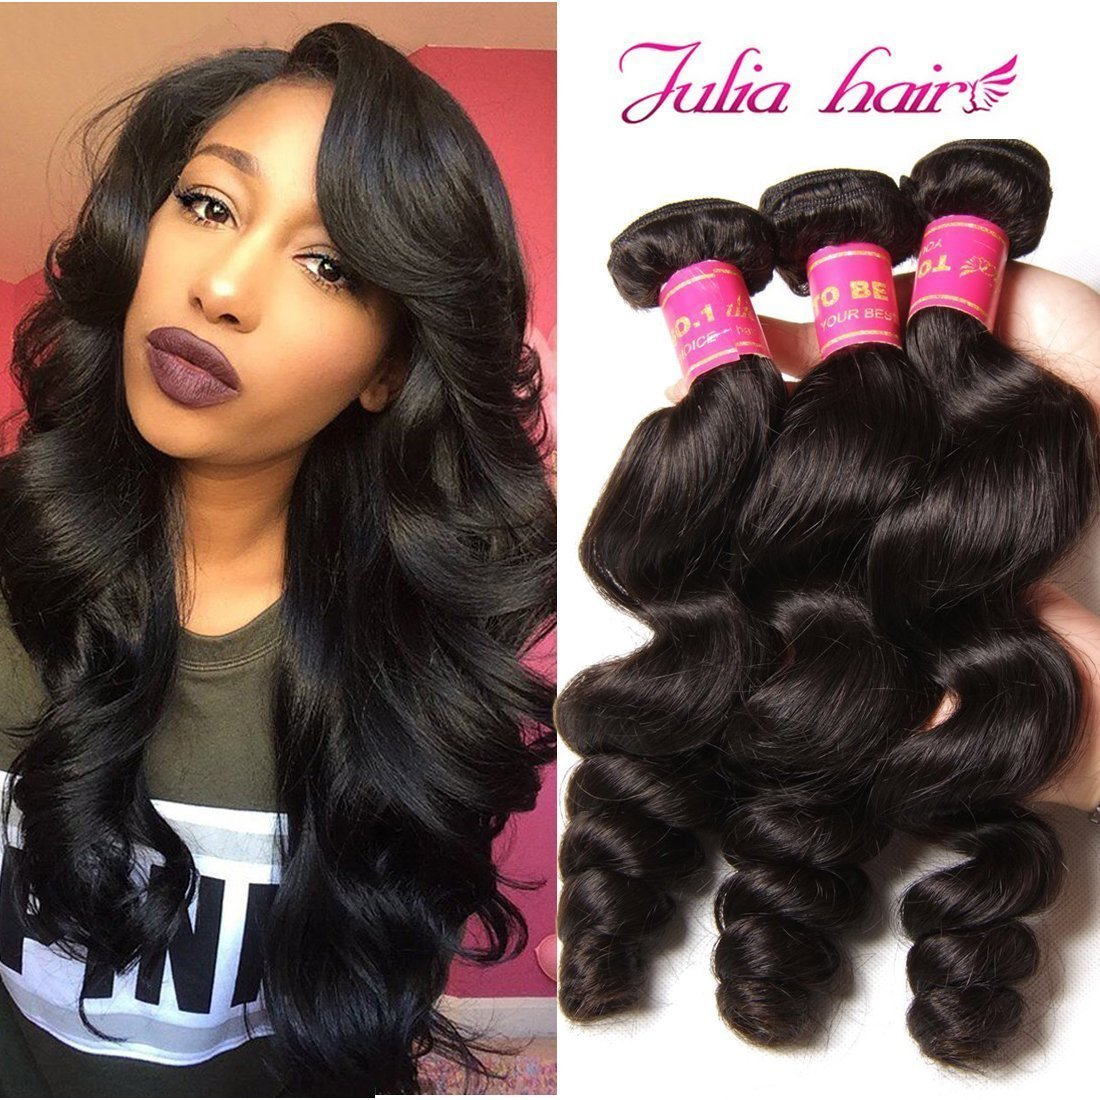 ALI JULIA 8A Brazilian Loose Wave Hair Weave 4 Bundles 100% Unprocessed Virgin Human Hair Weft Extensions 95-100g/pc Natural Color (4PC20 22 24 26) by Yilian (Image #1)